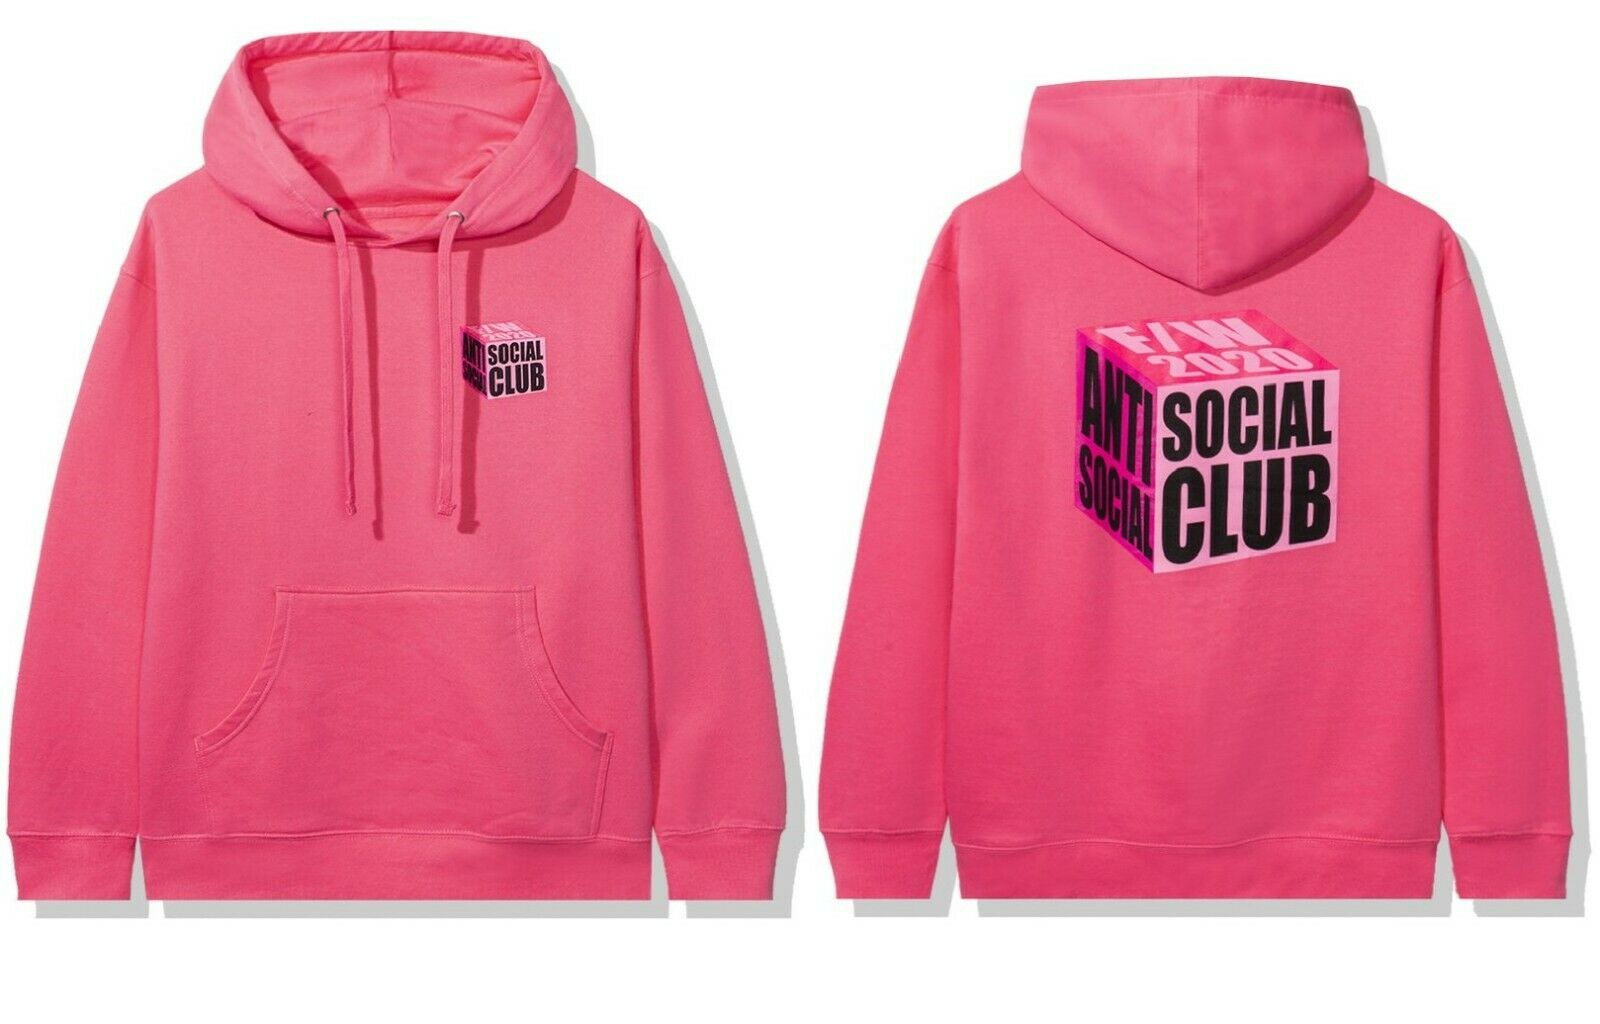 DS Anti Social Social Club ASSC I Wish I Was Wrong Pink Hoodie in hand Supreme